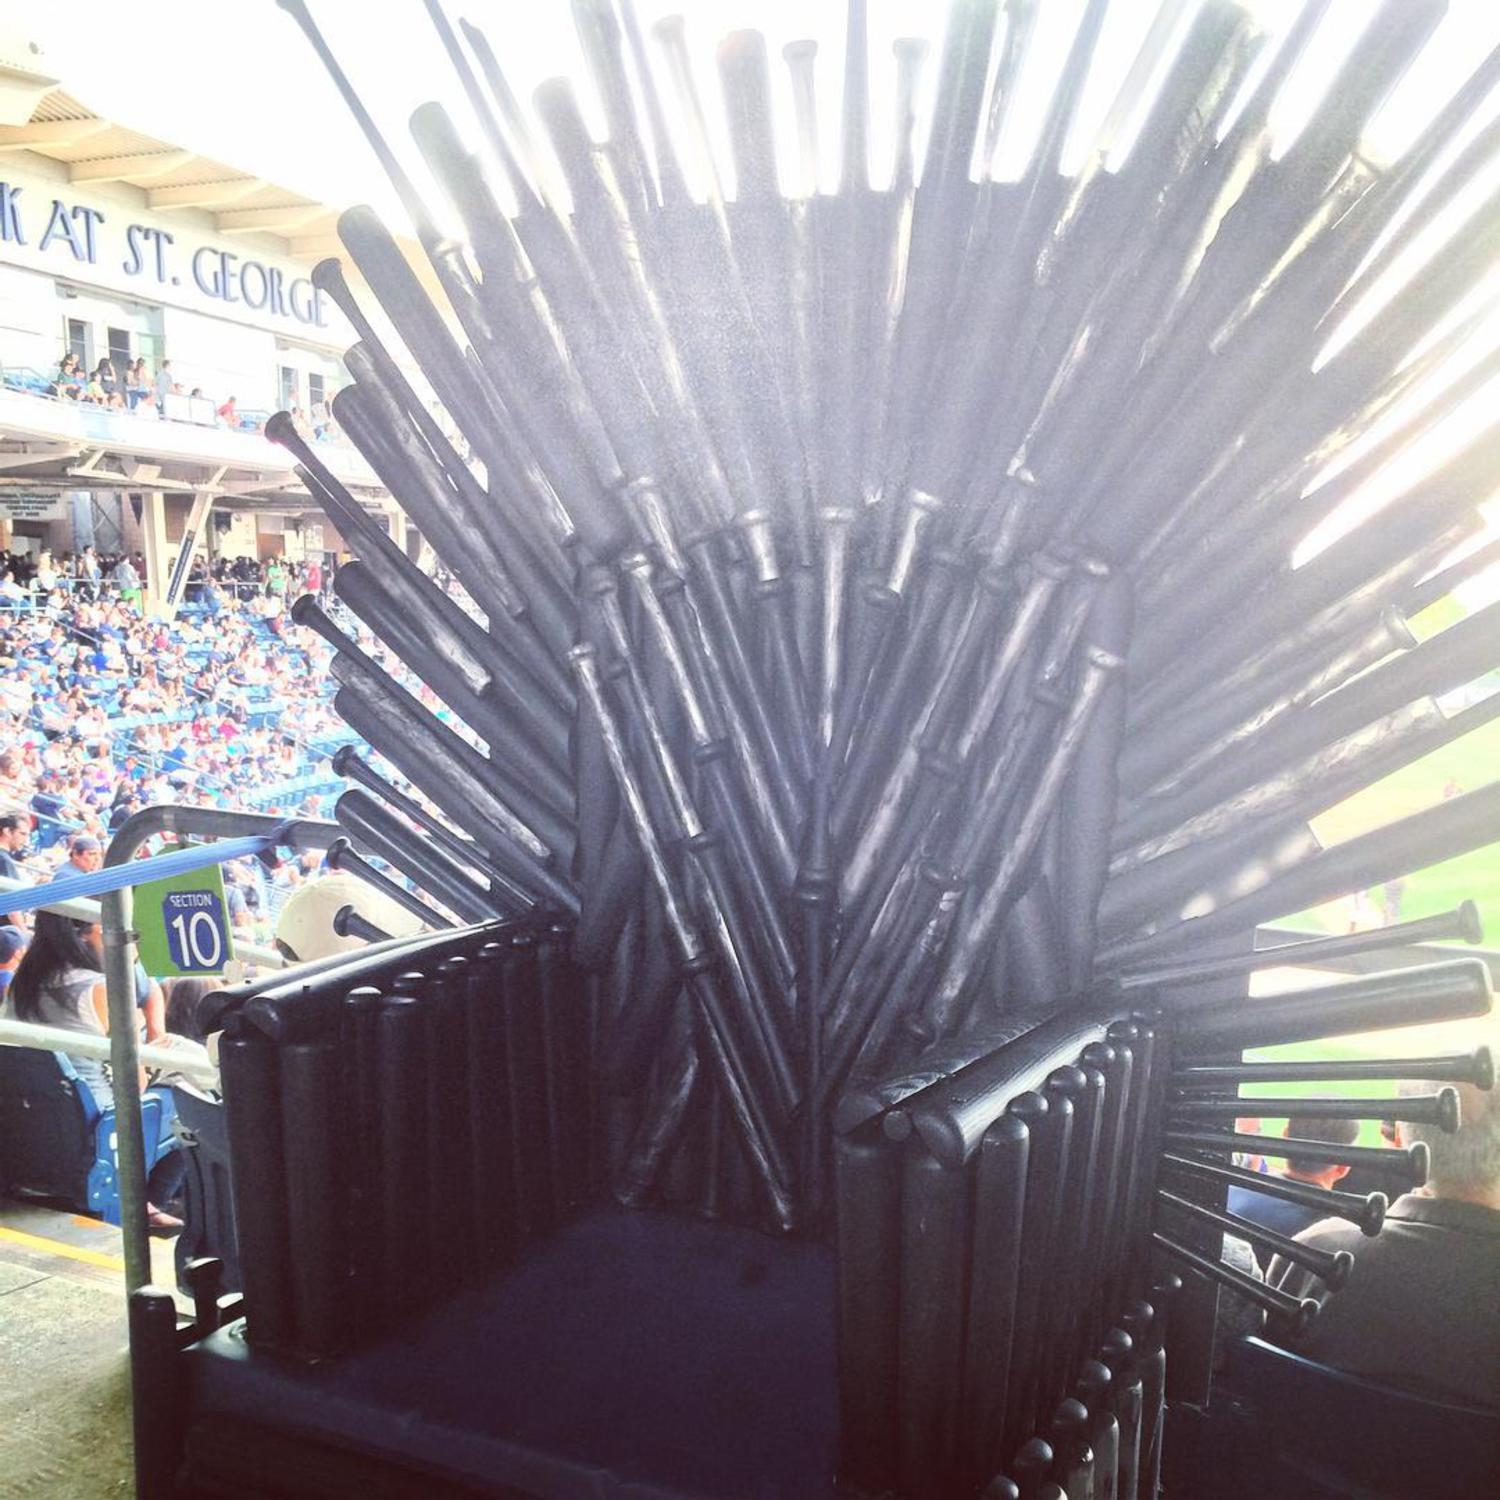 They even had an #IronThrone made of baseball bats last night. The #StatenIslandDirewolves crushed the #HudsonValley #Lannisters on #GeorgeRRMartin night in #KingsLanding aka #StatenIsland. #StatenIslandYankees #MinorLeagueBaseball #baseball #NYC #Direwolves #GRRM #GameOfThrones